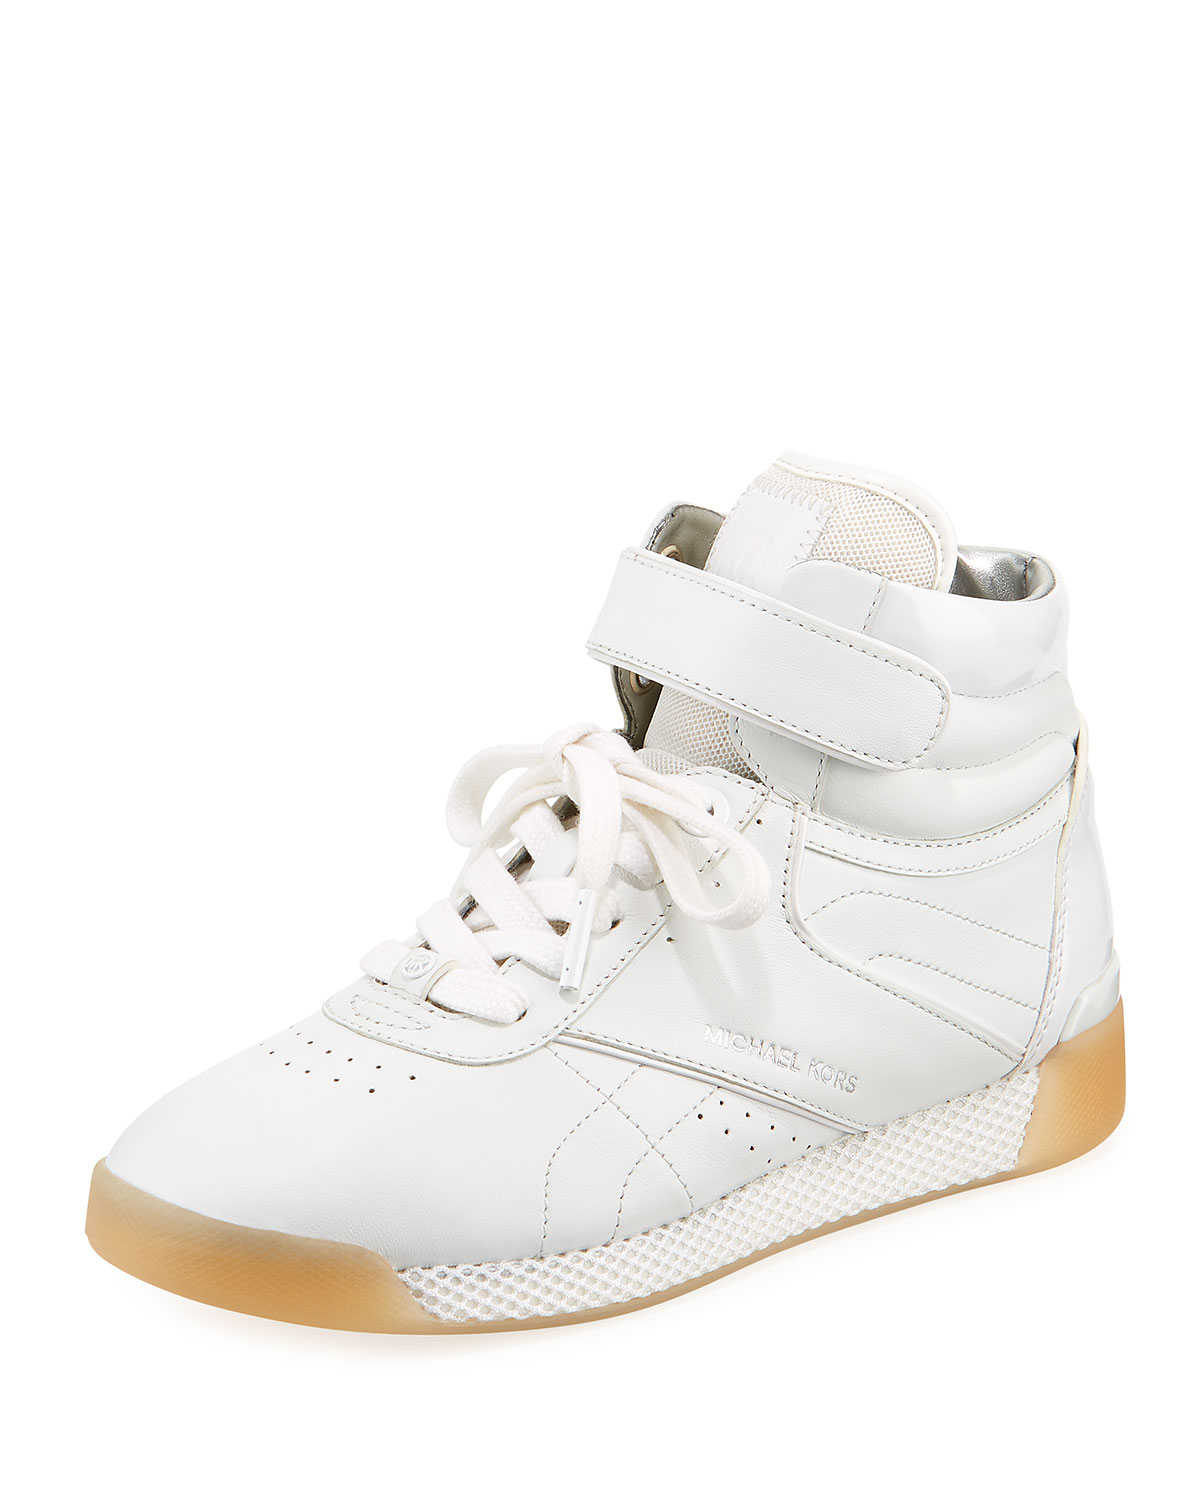 Addie High-Top Leather Sneaker, White